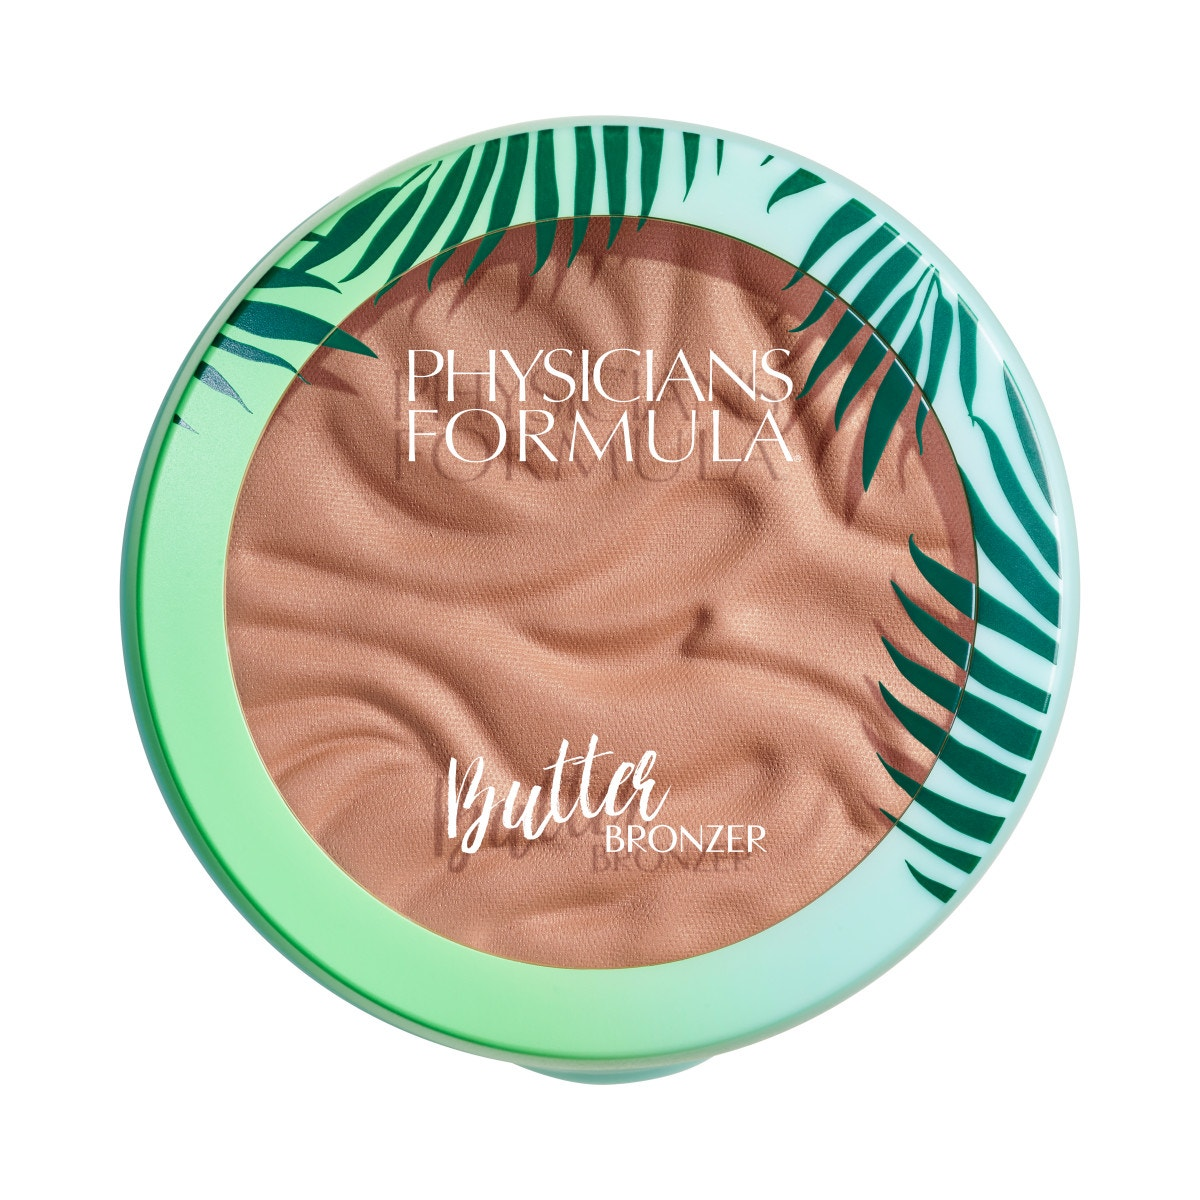 Murumuru Butter Bronzer | Phsicians Formula | Products front facing lid closed, with no background